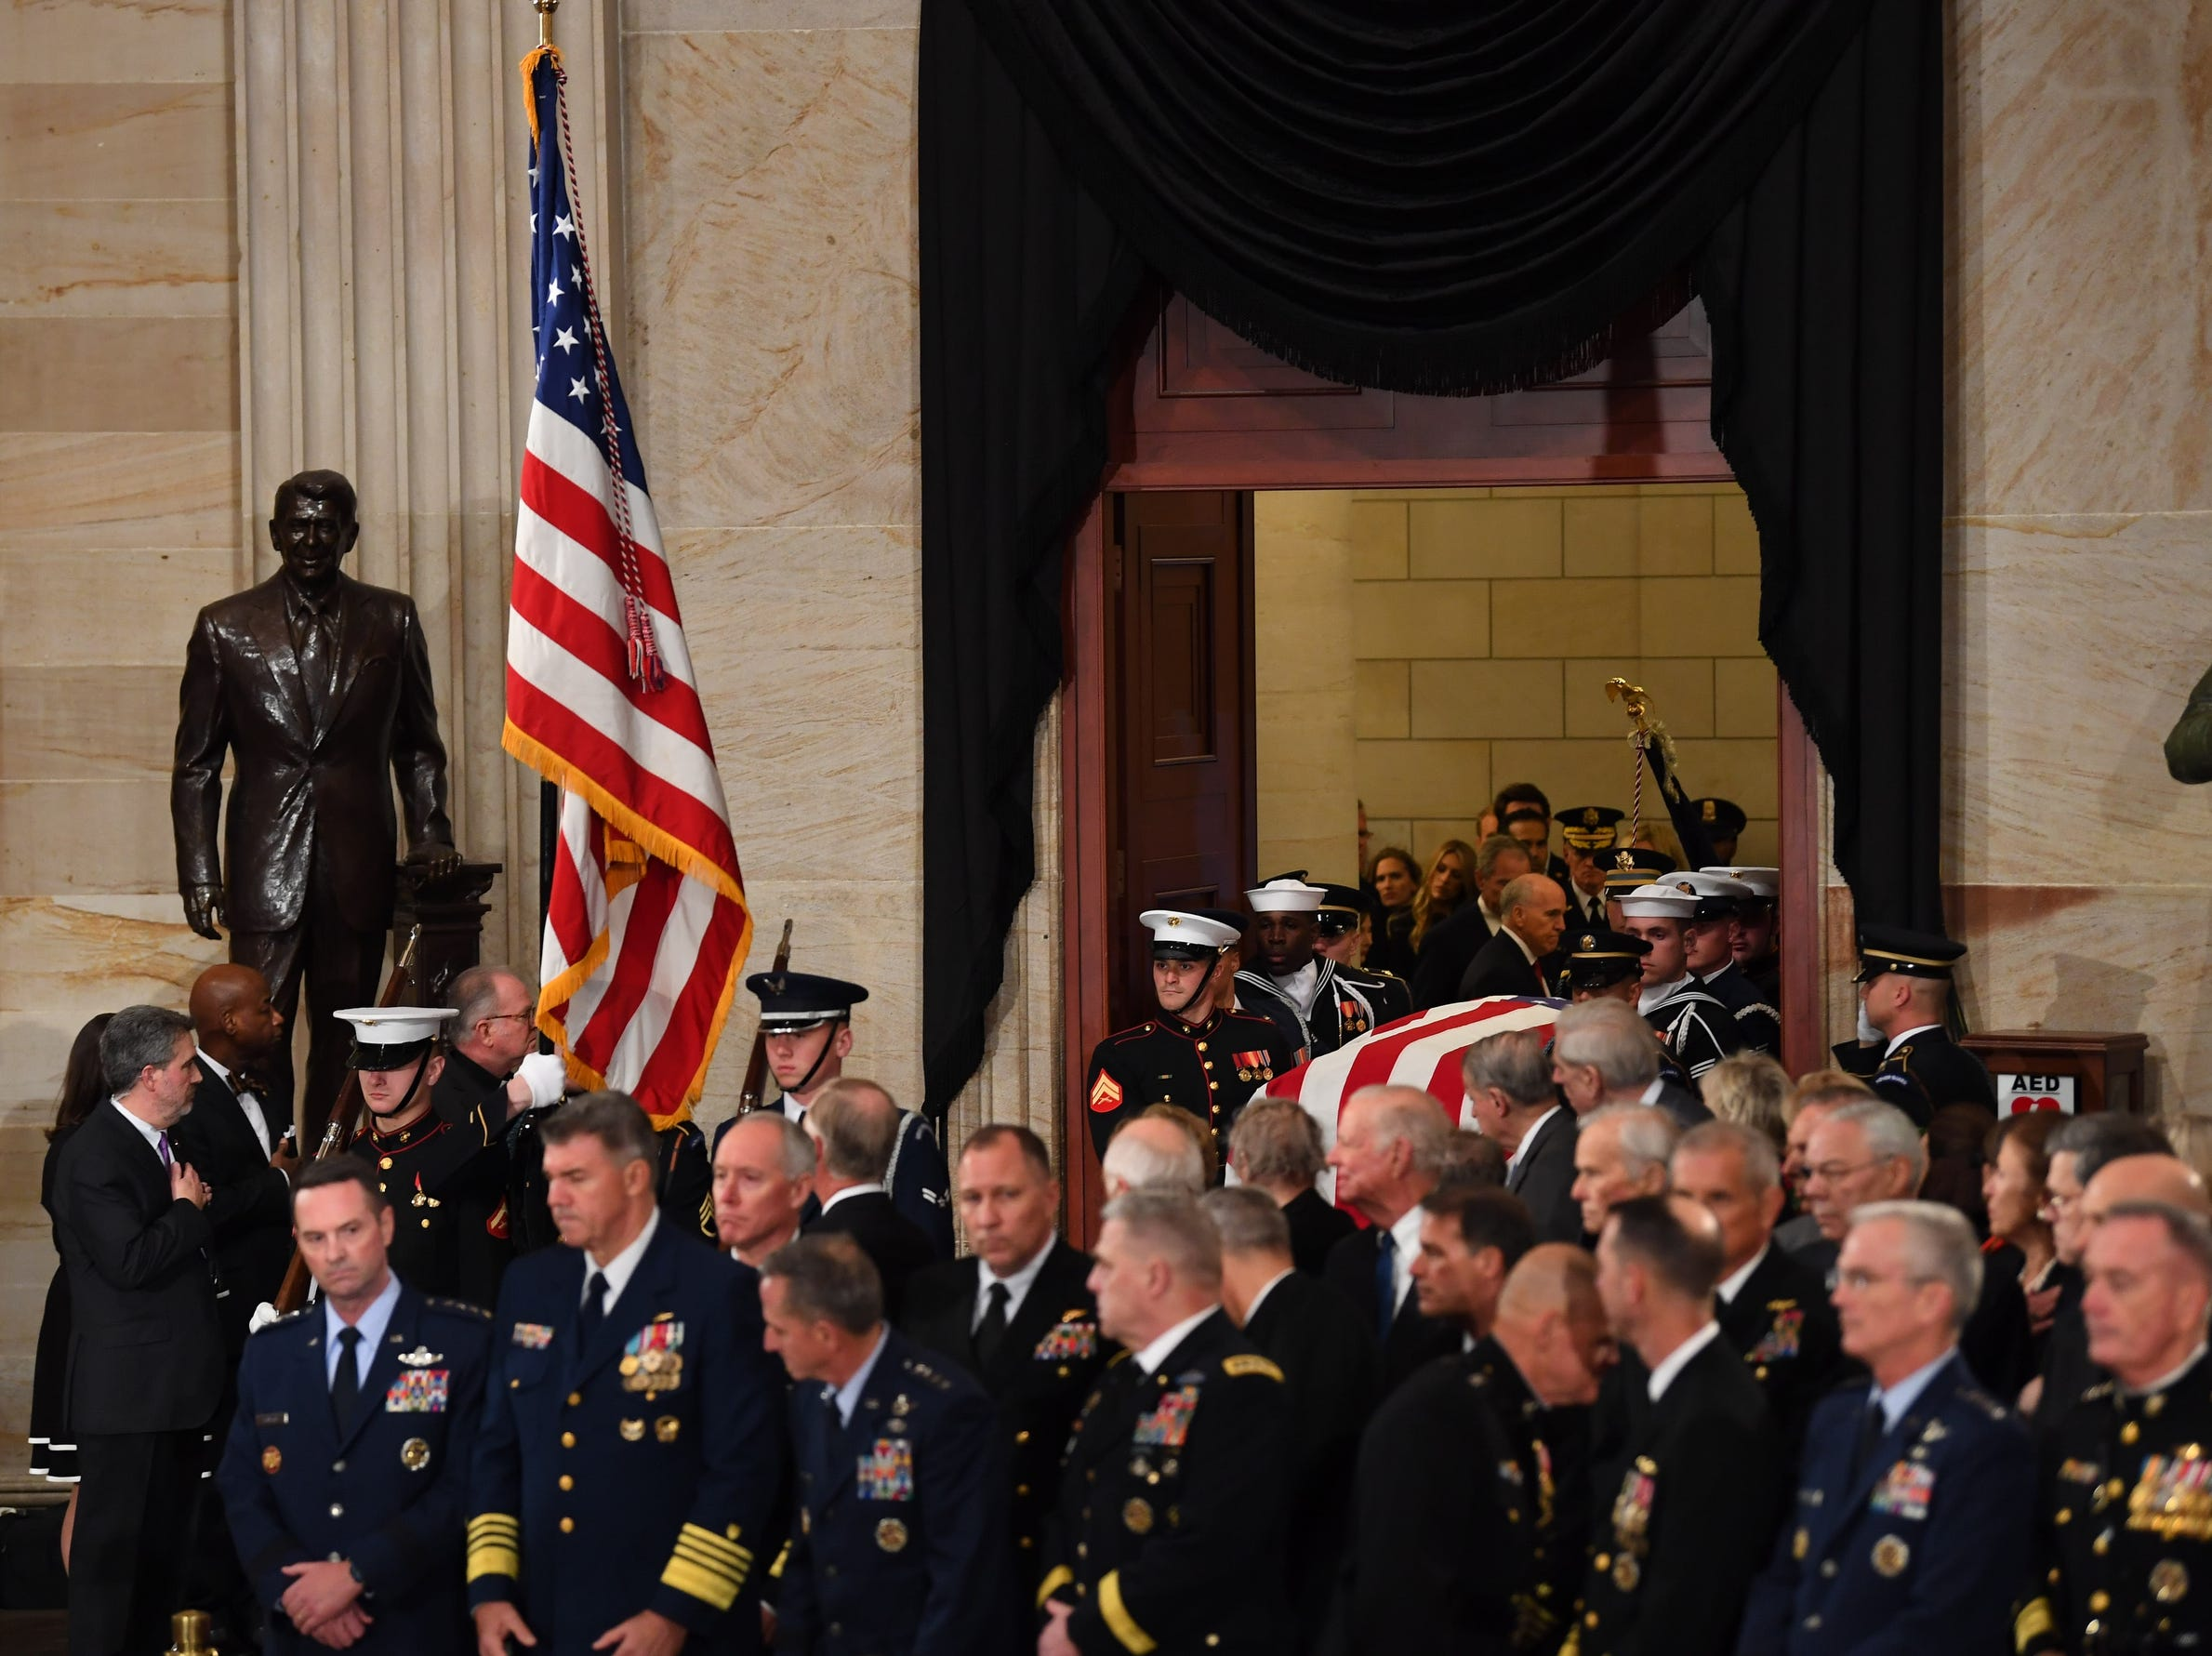 Honor guards bear the casket of former U.S President George H.W. Bush into the U.S. Capitol Rotunda.